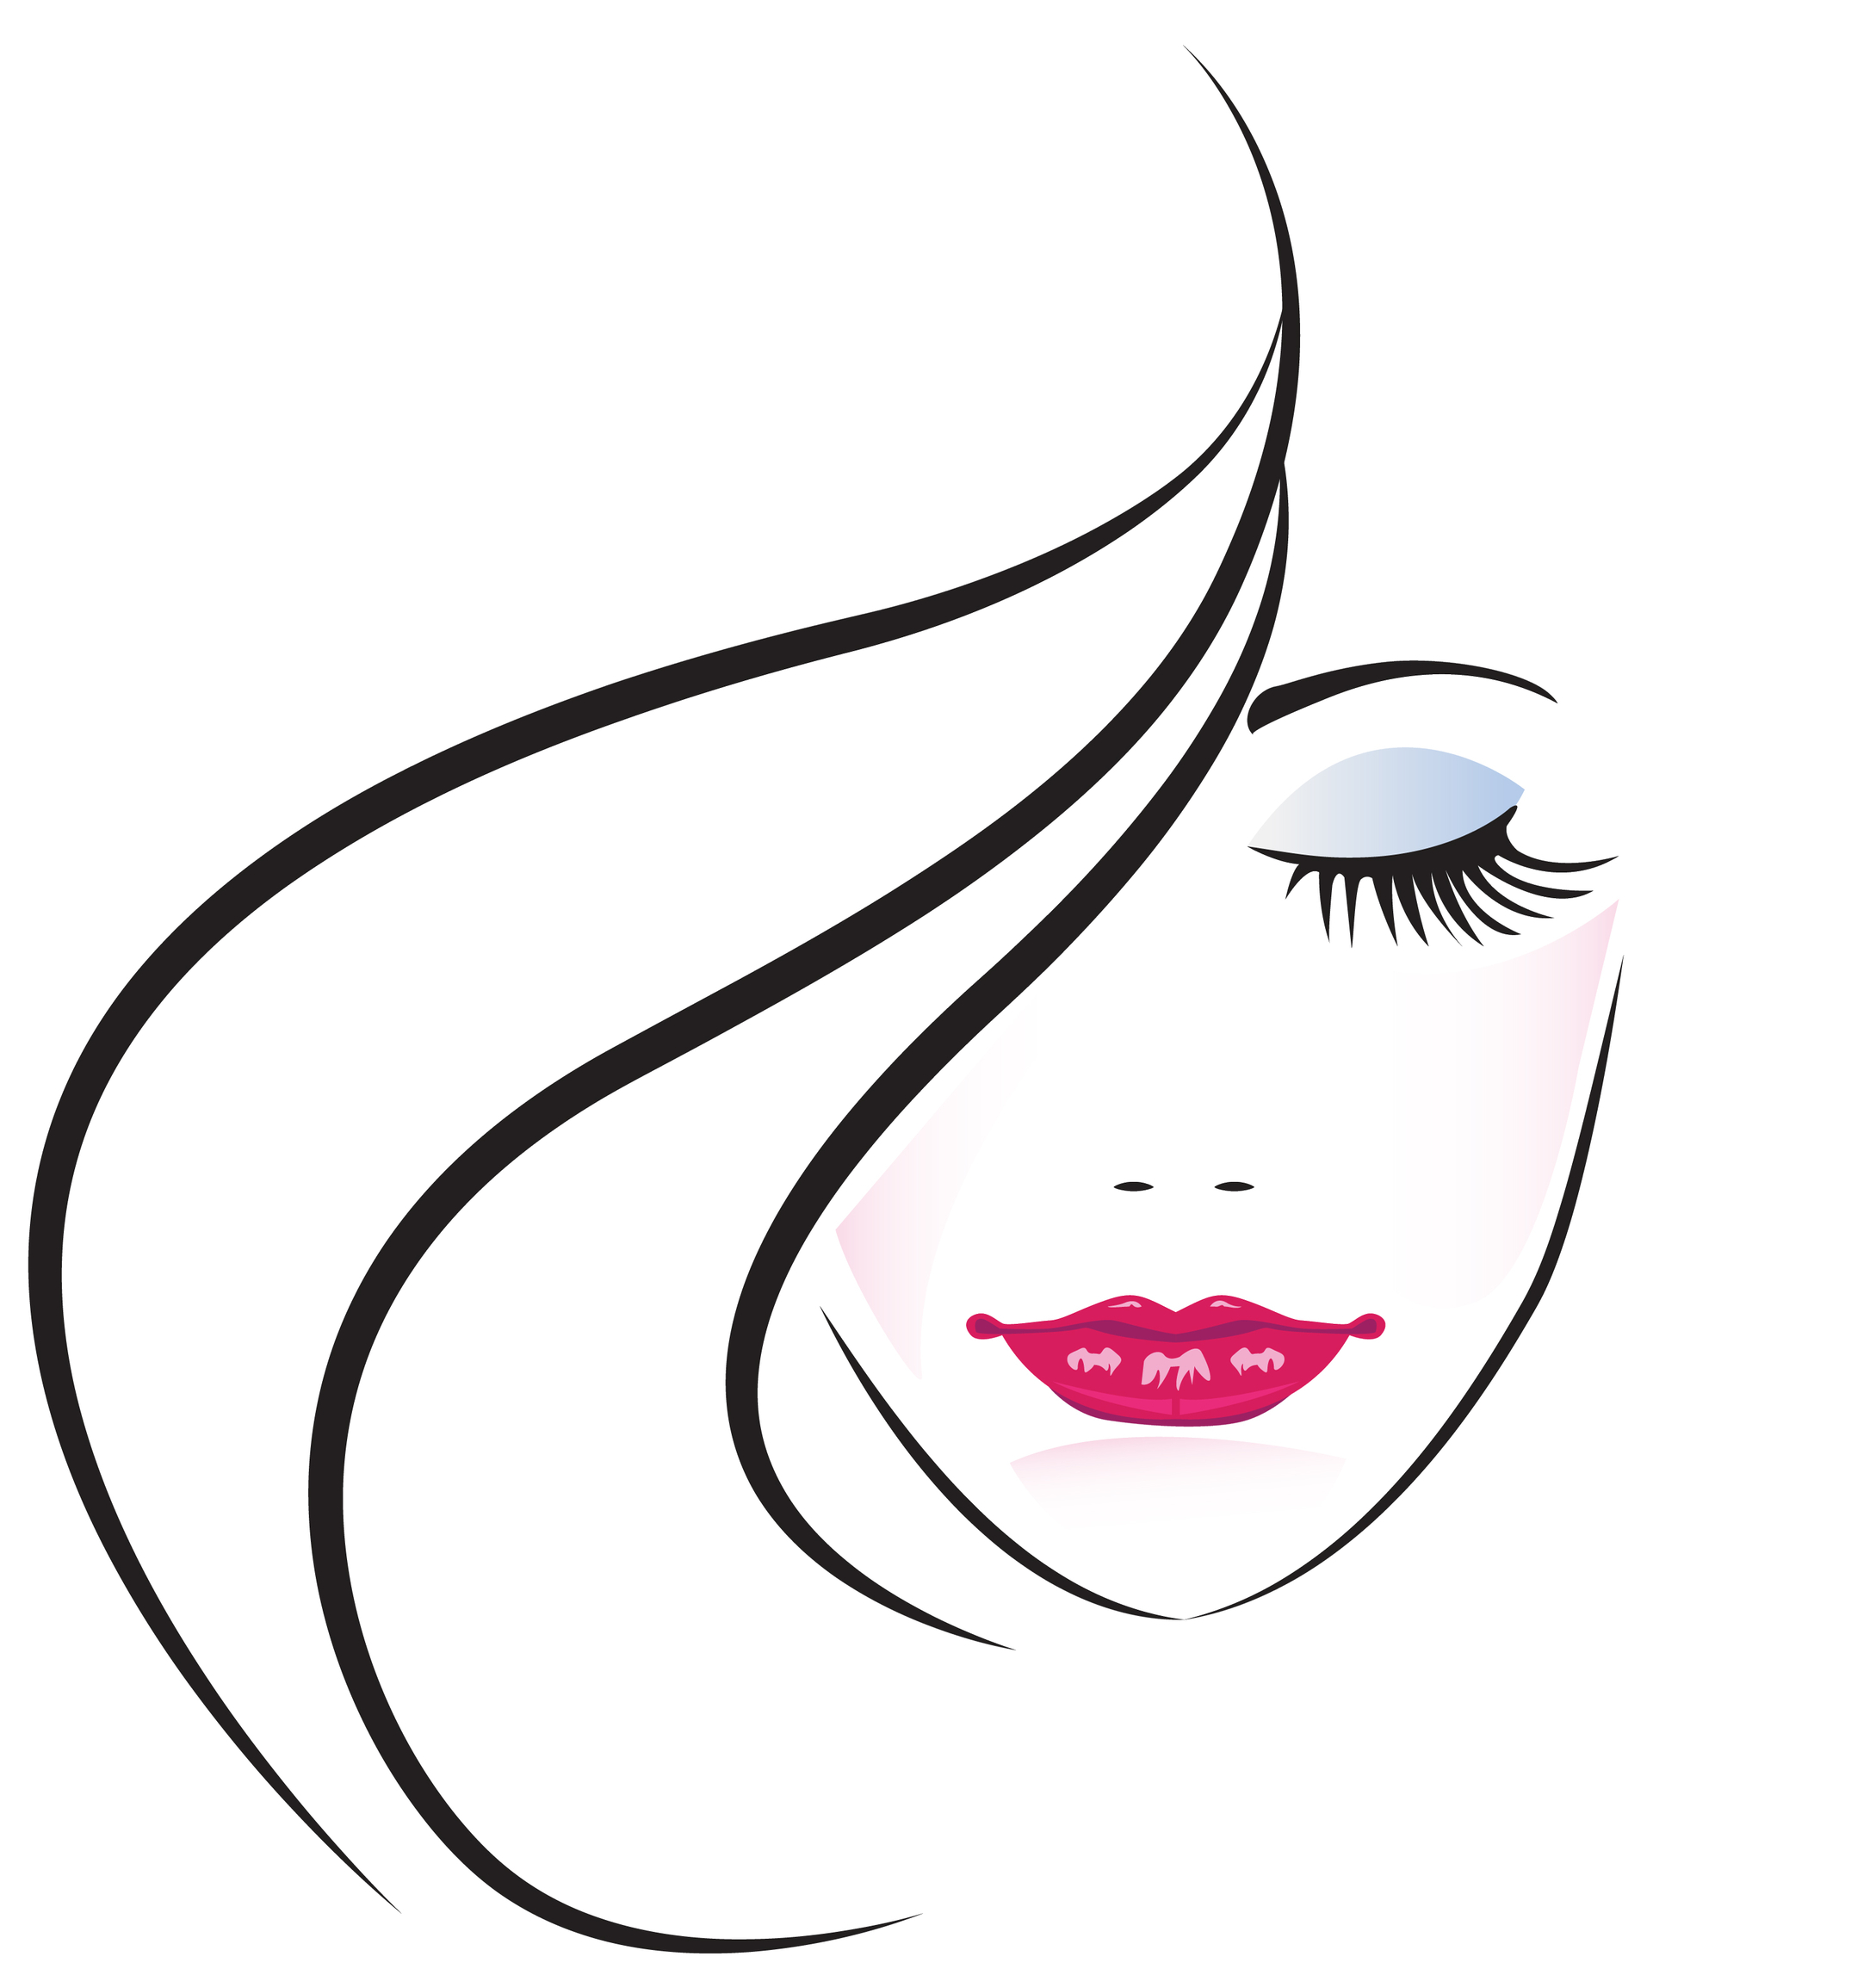 Free Cliparts Face Makeup, Download Free Clip Art, Free Clip Art on.